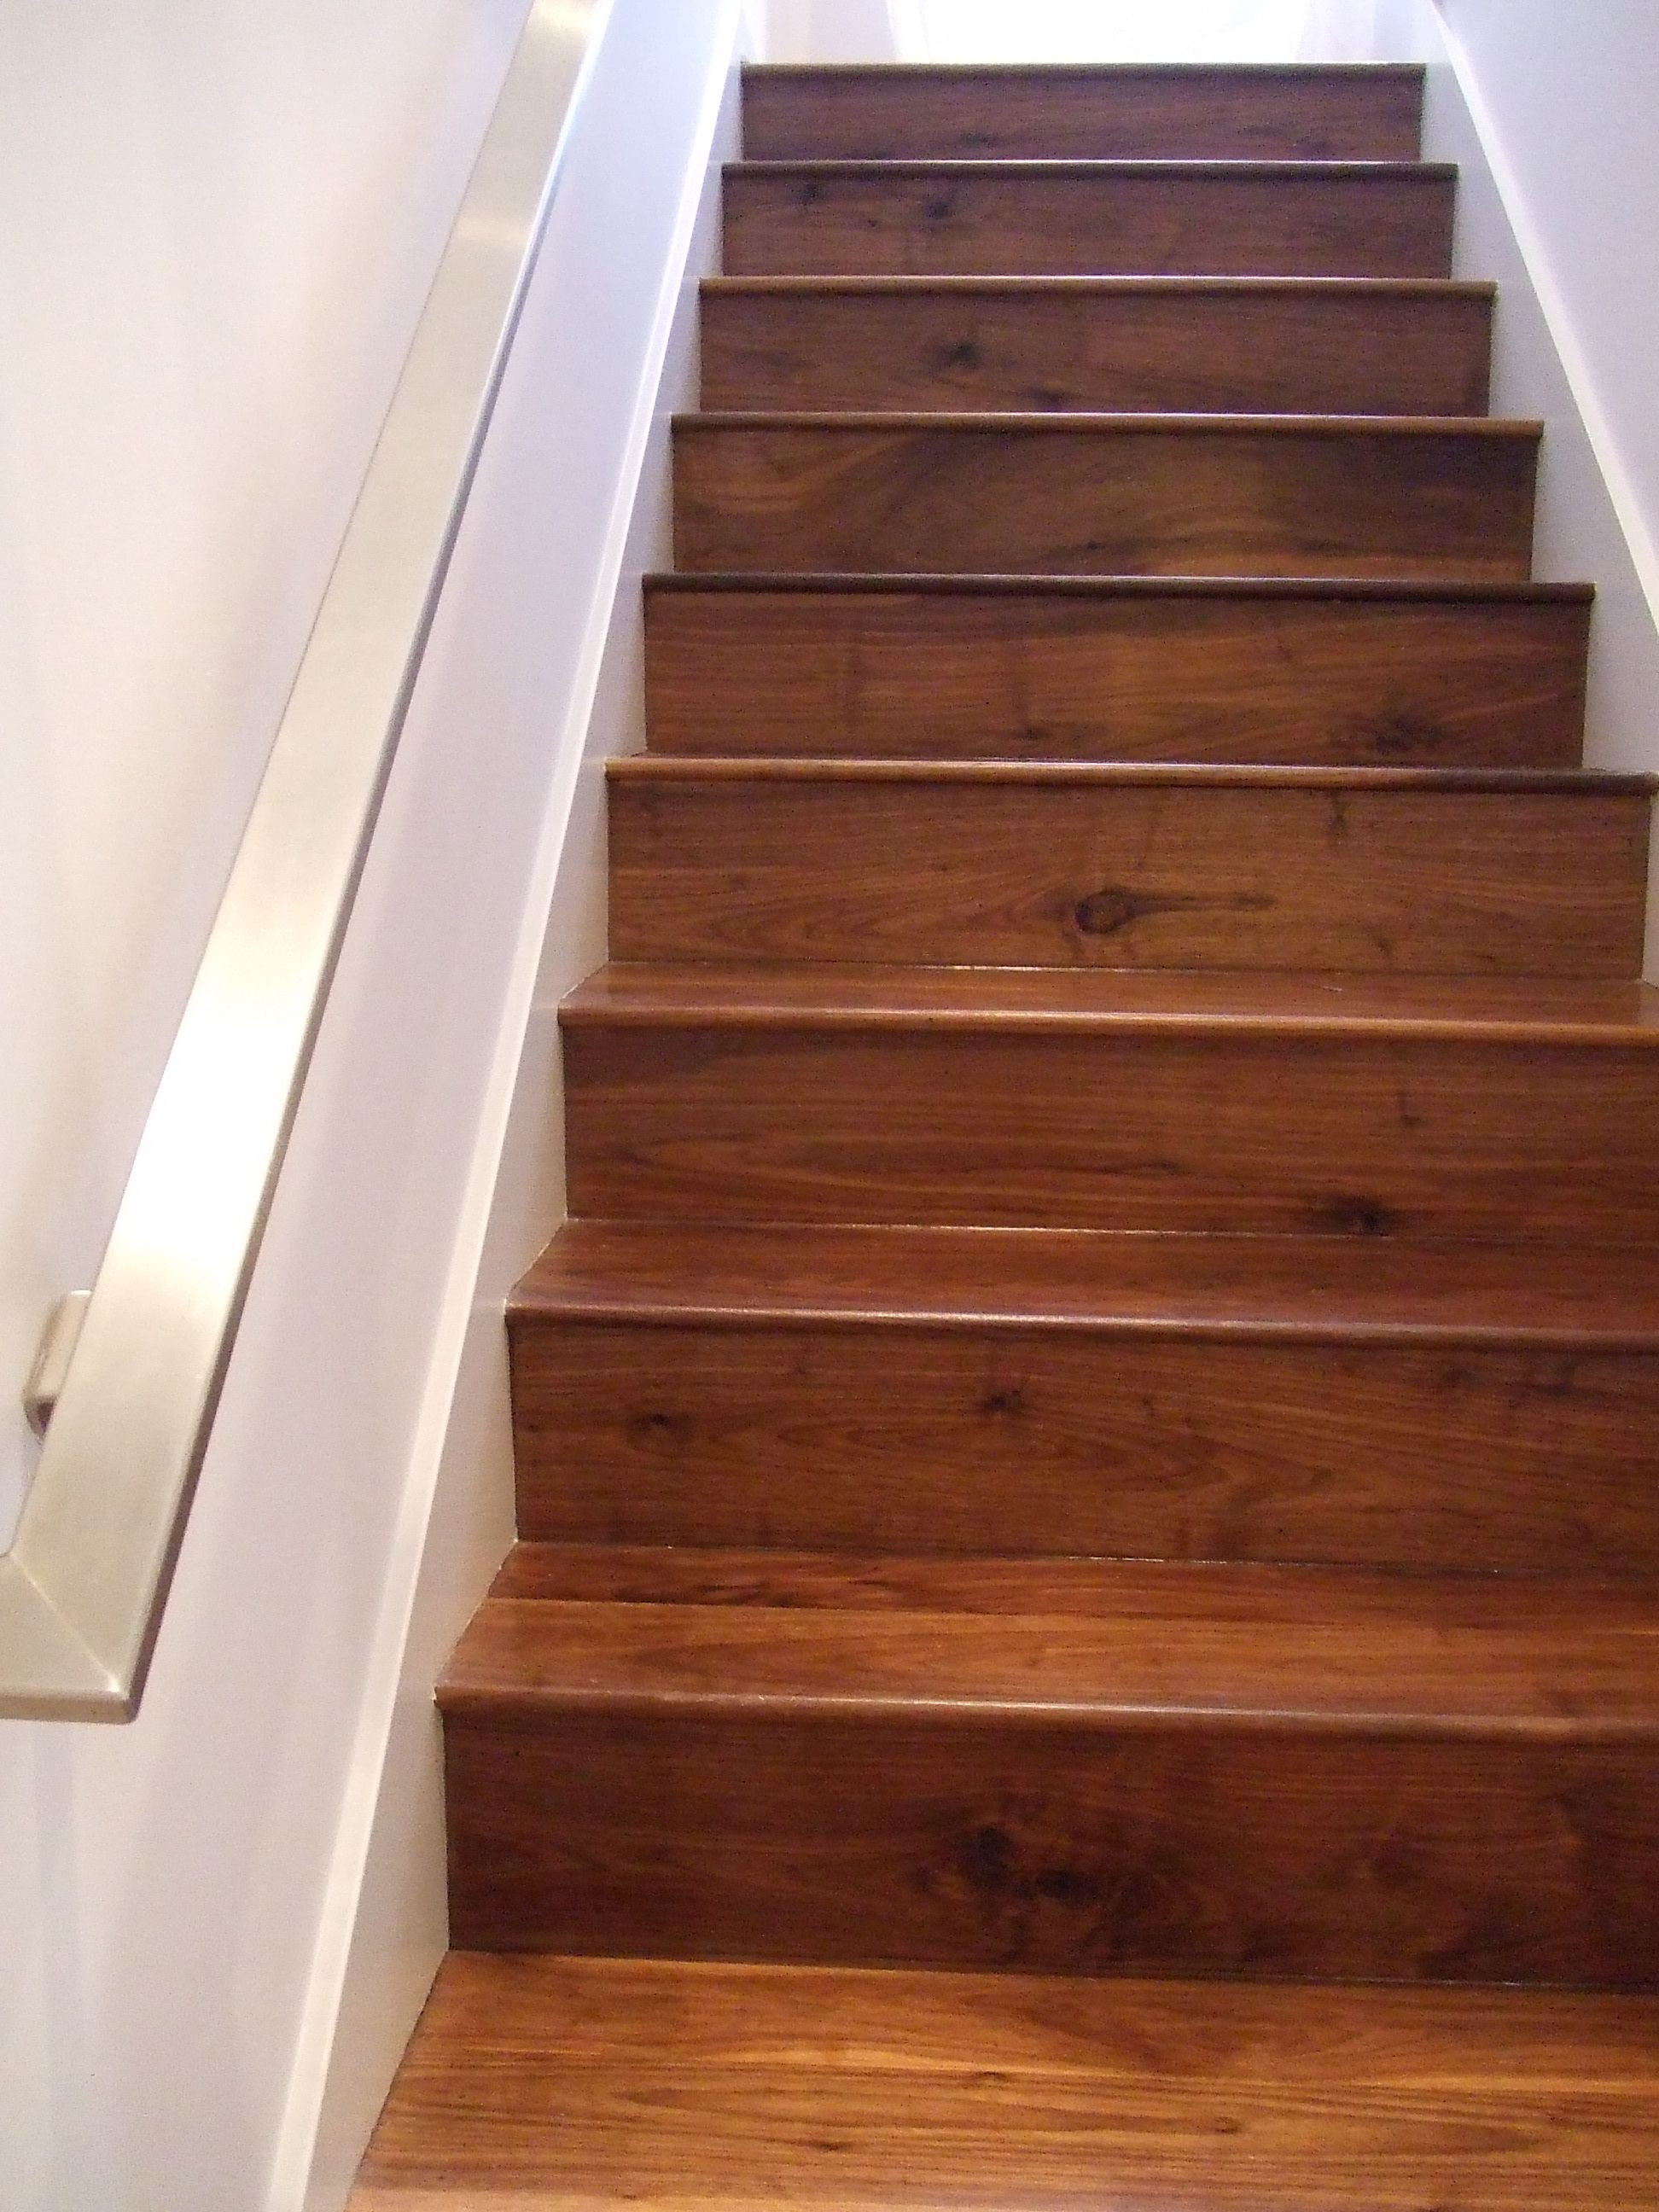 hardwood flooring on stairs pictures of black american walnut stairs my house pinterest house inside black american walnut stairs